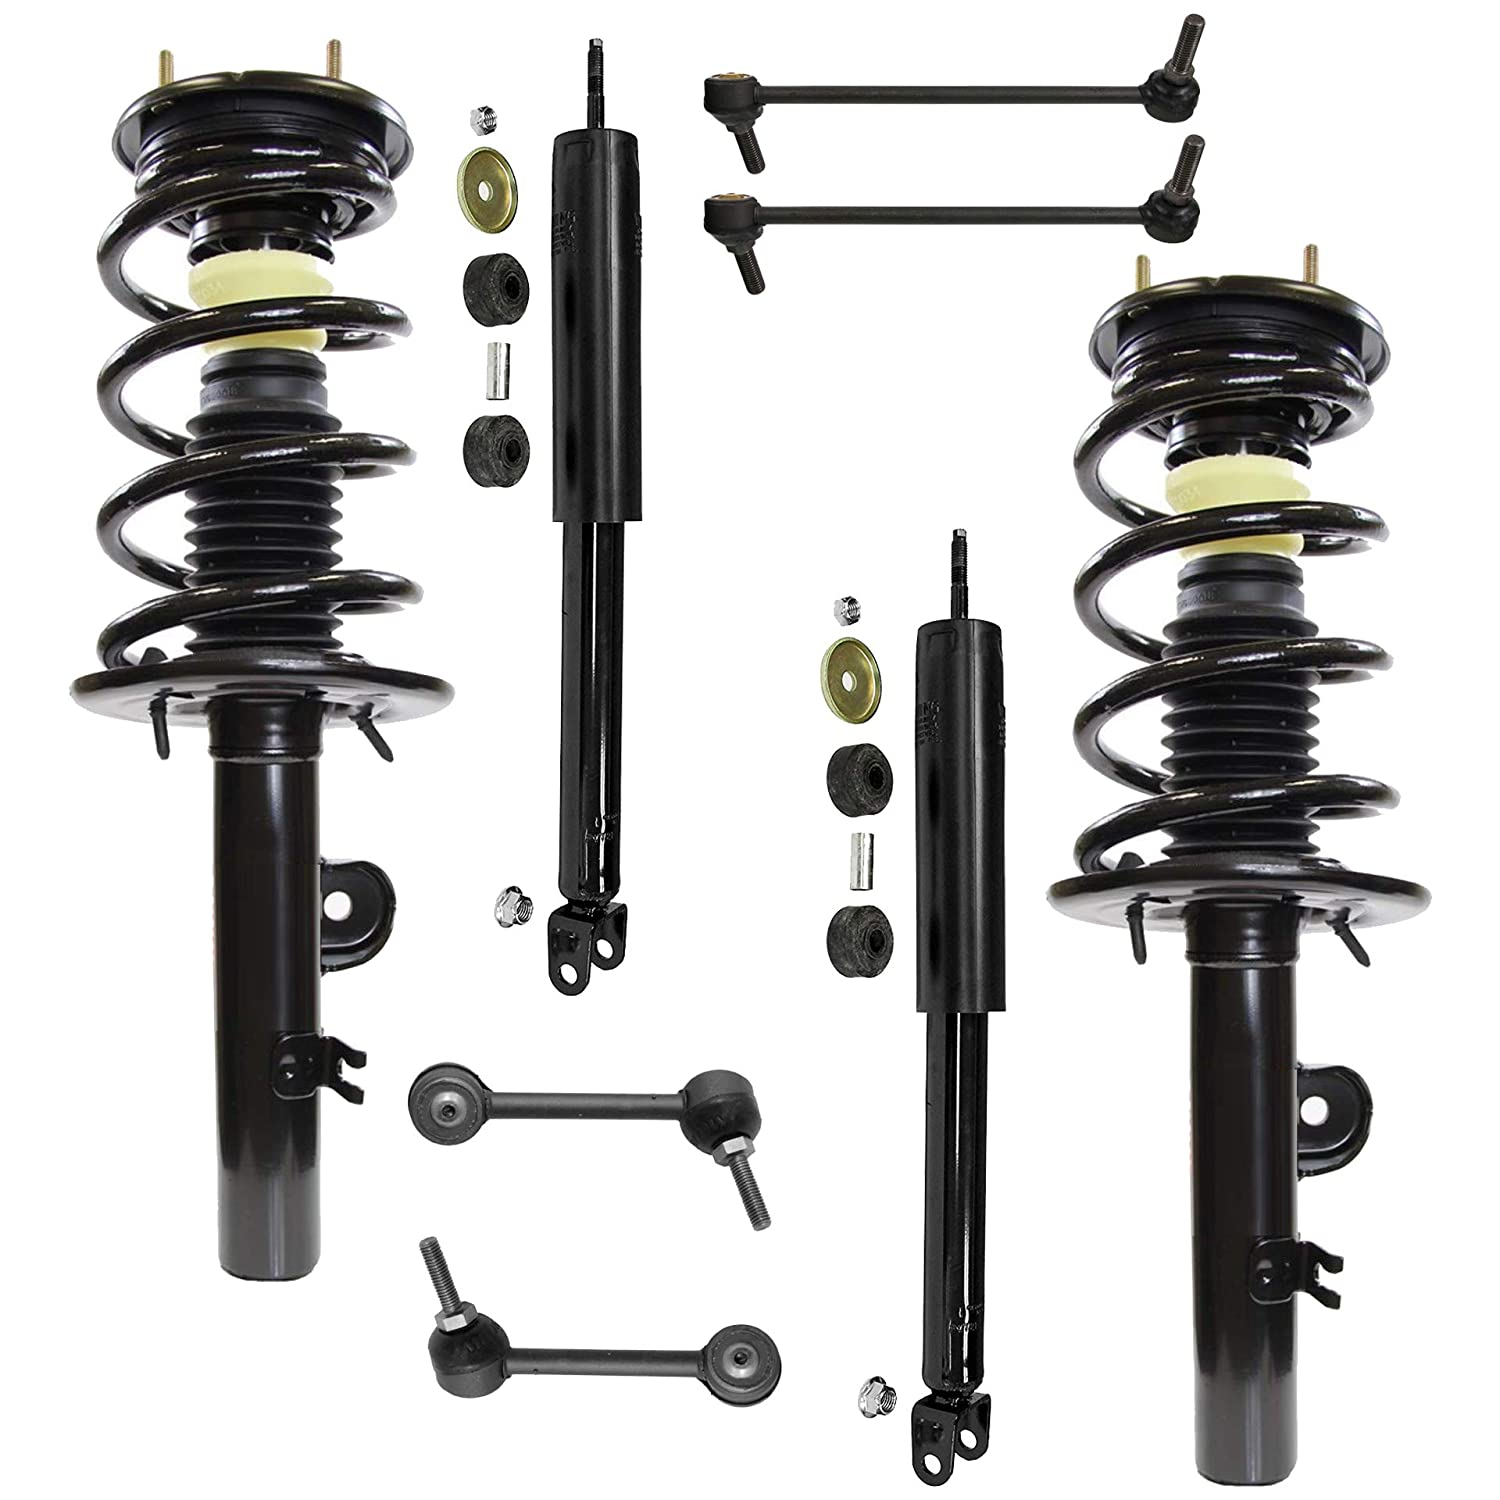 Detroit Axle 8PC Front Strut /& Coil Spring Assembly and Rear Shock Absorber Assembly w//Sway Bars for 2010 2011 2012 Ford Flex Naturally Aspirated Models